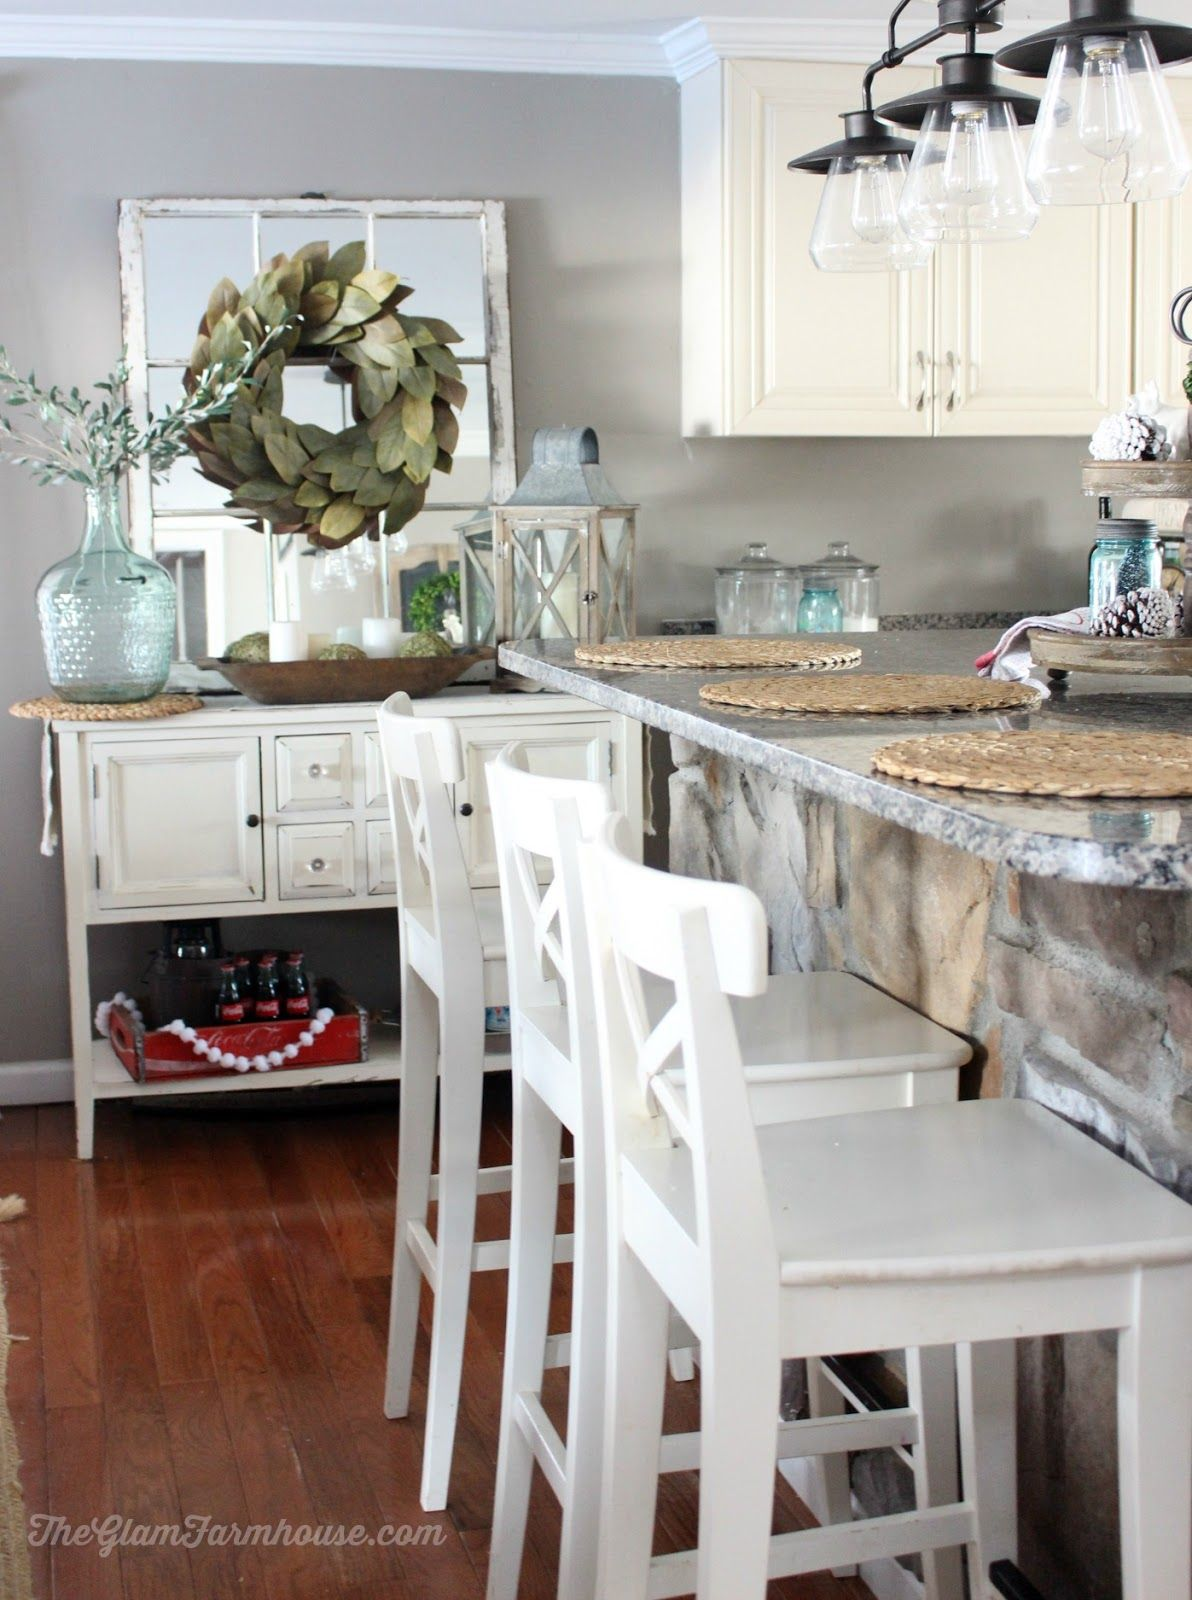 Rustic Glam Dining Room Tour with Before & Afters! | Pinterest ...